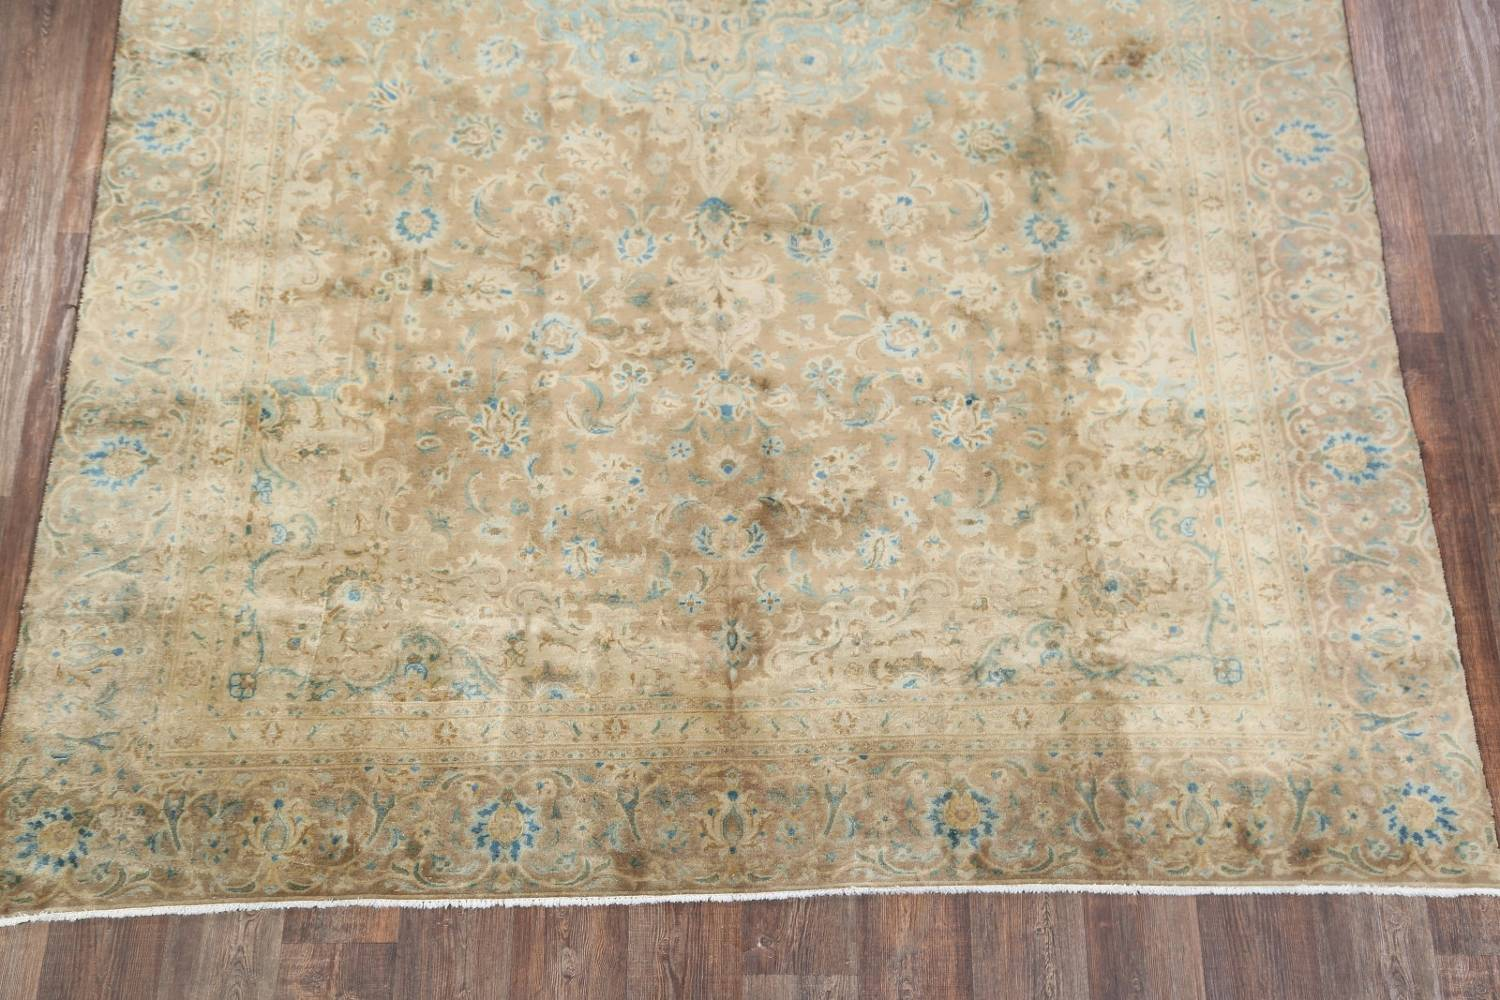 Antique Muted Distressed Kashan Persian Area Rug 9x13 image 8